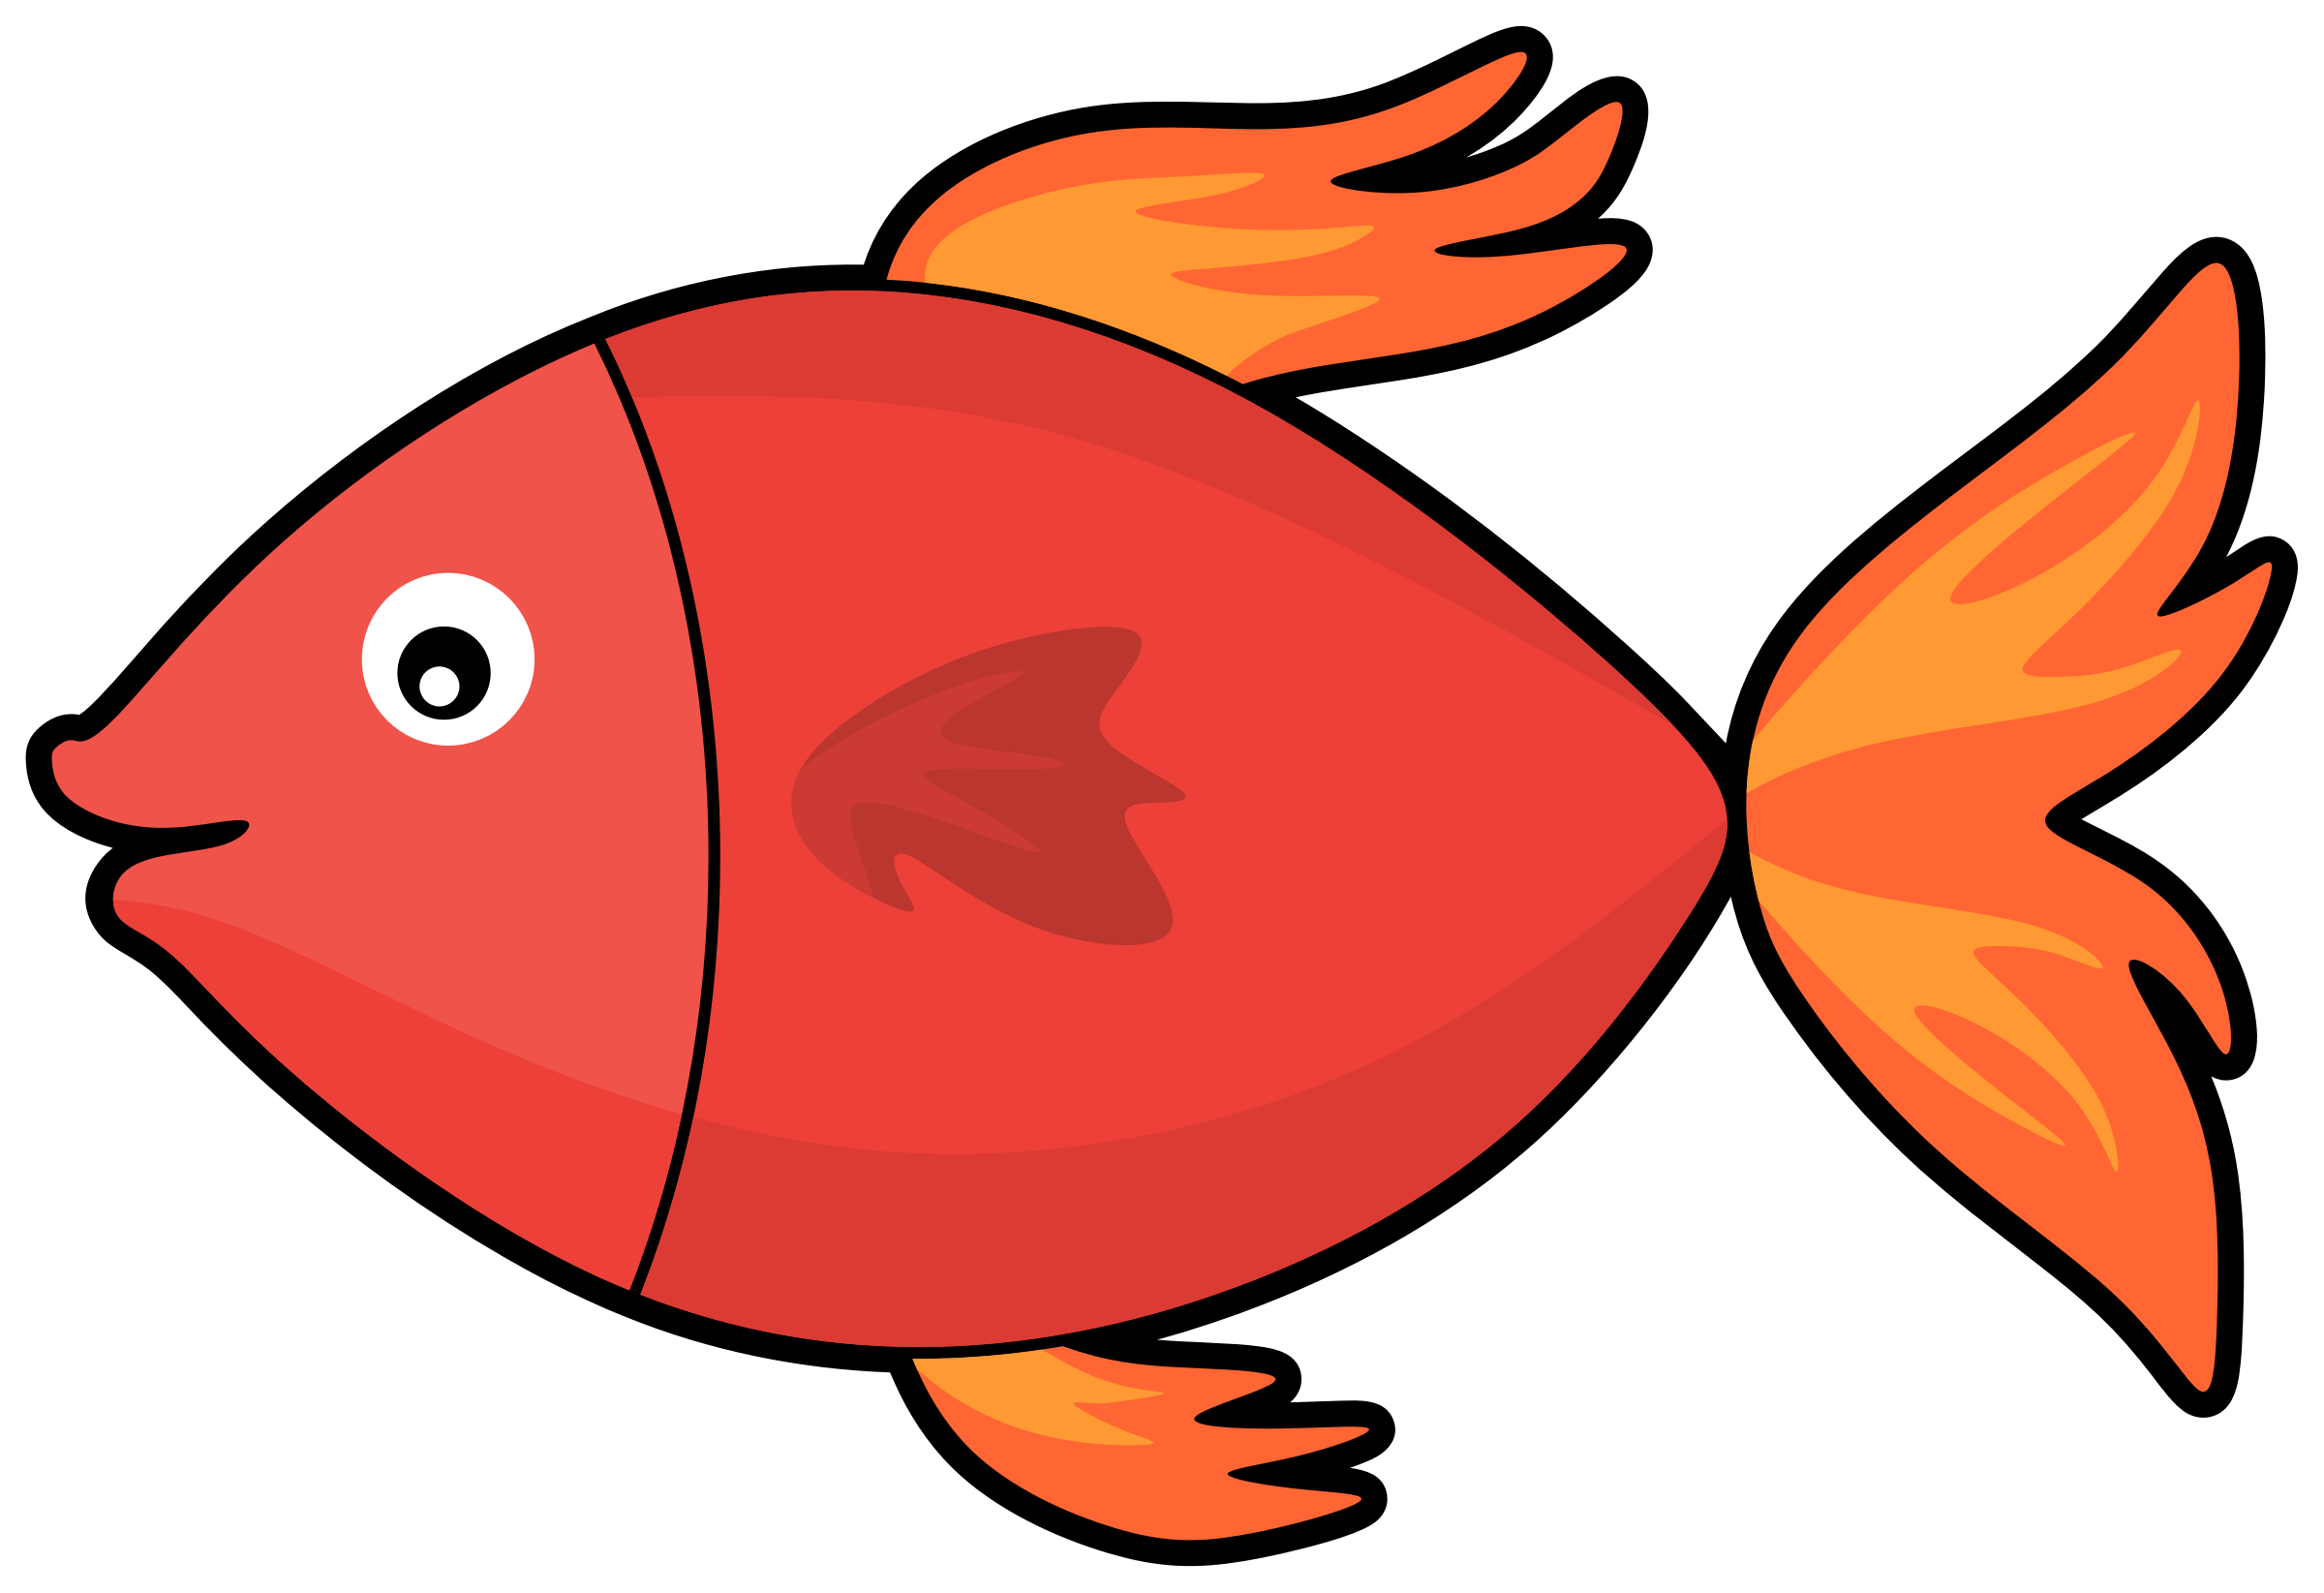 Butterfly Fish Clipart At Getdrawings.